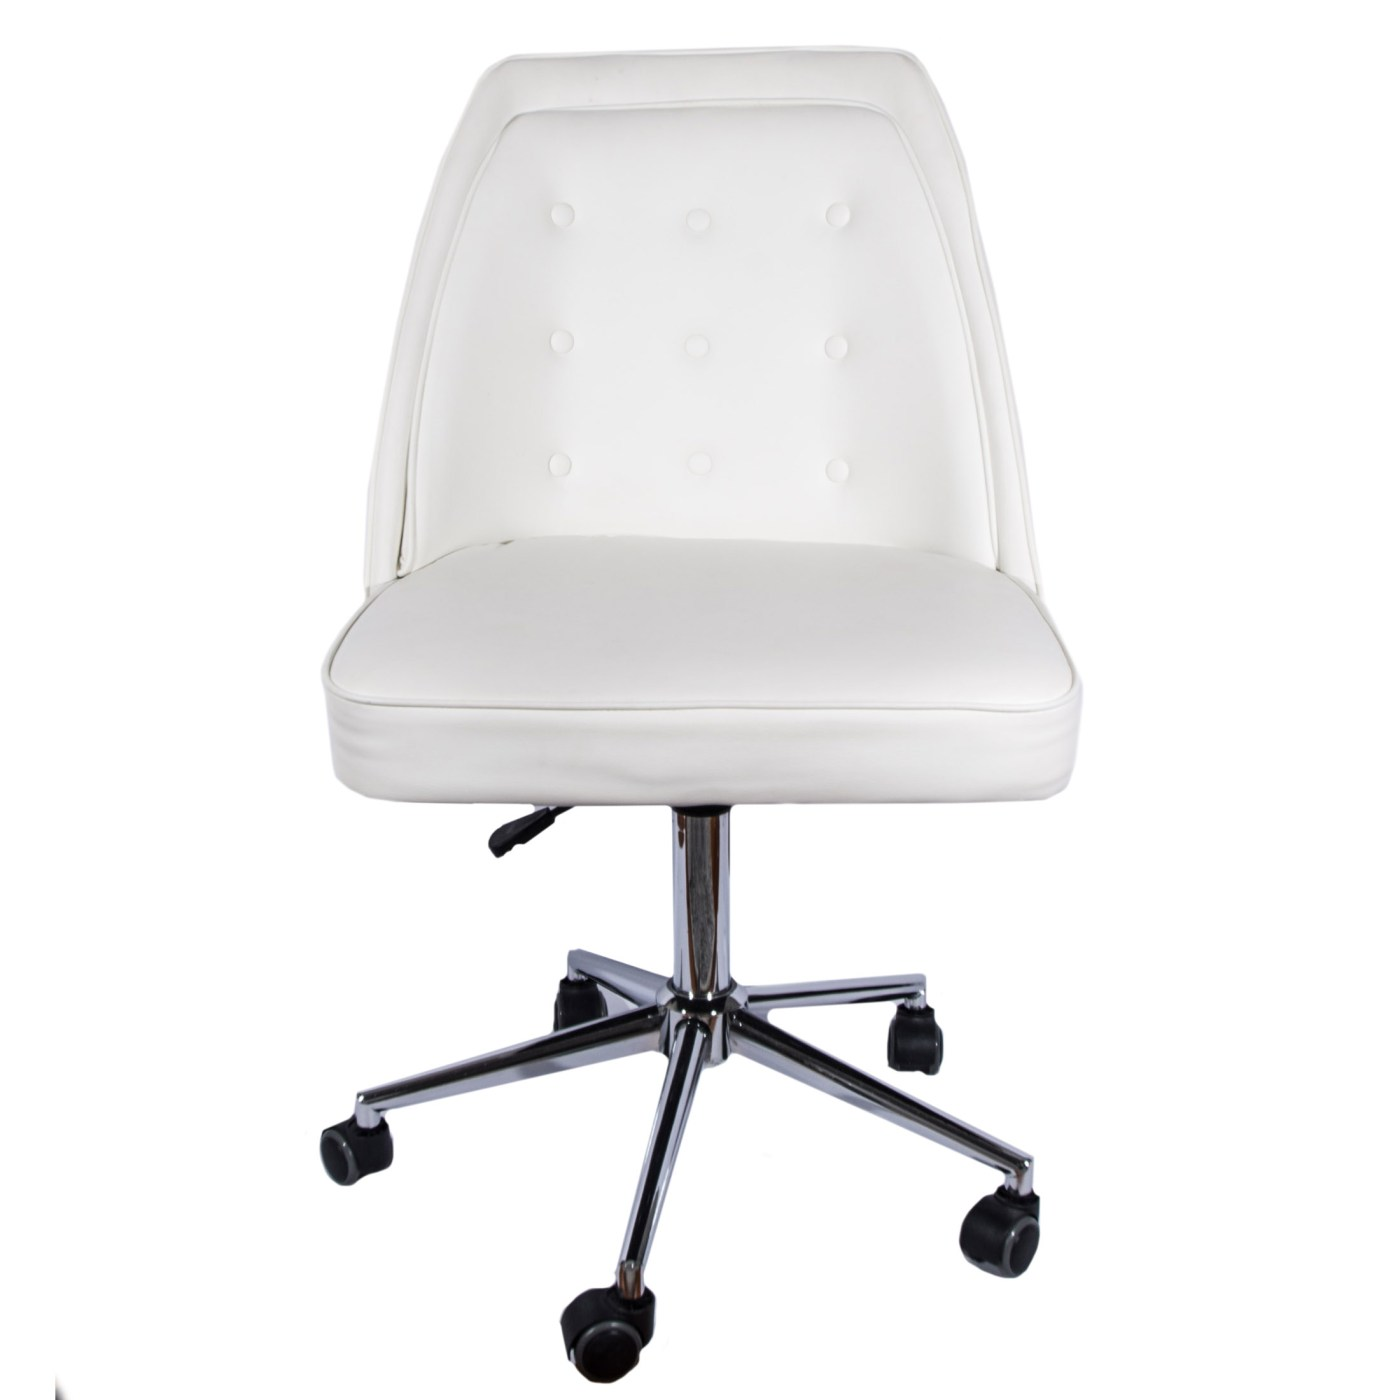 White Rolling Chair White Leather Rolling Desk Chair By Tainoki Ebth